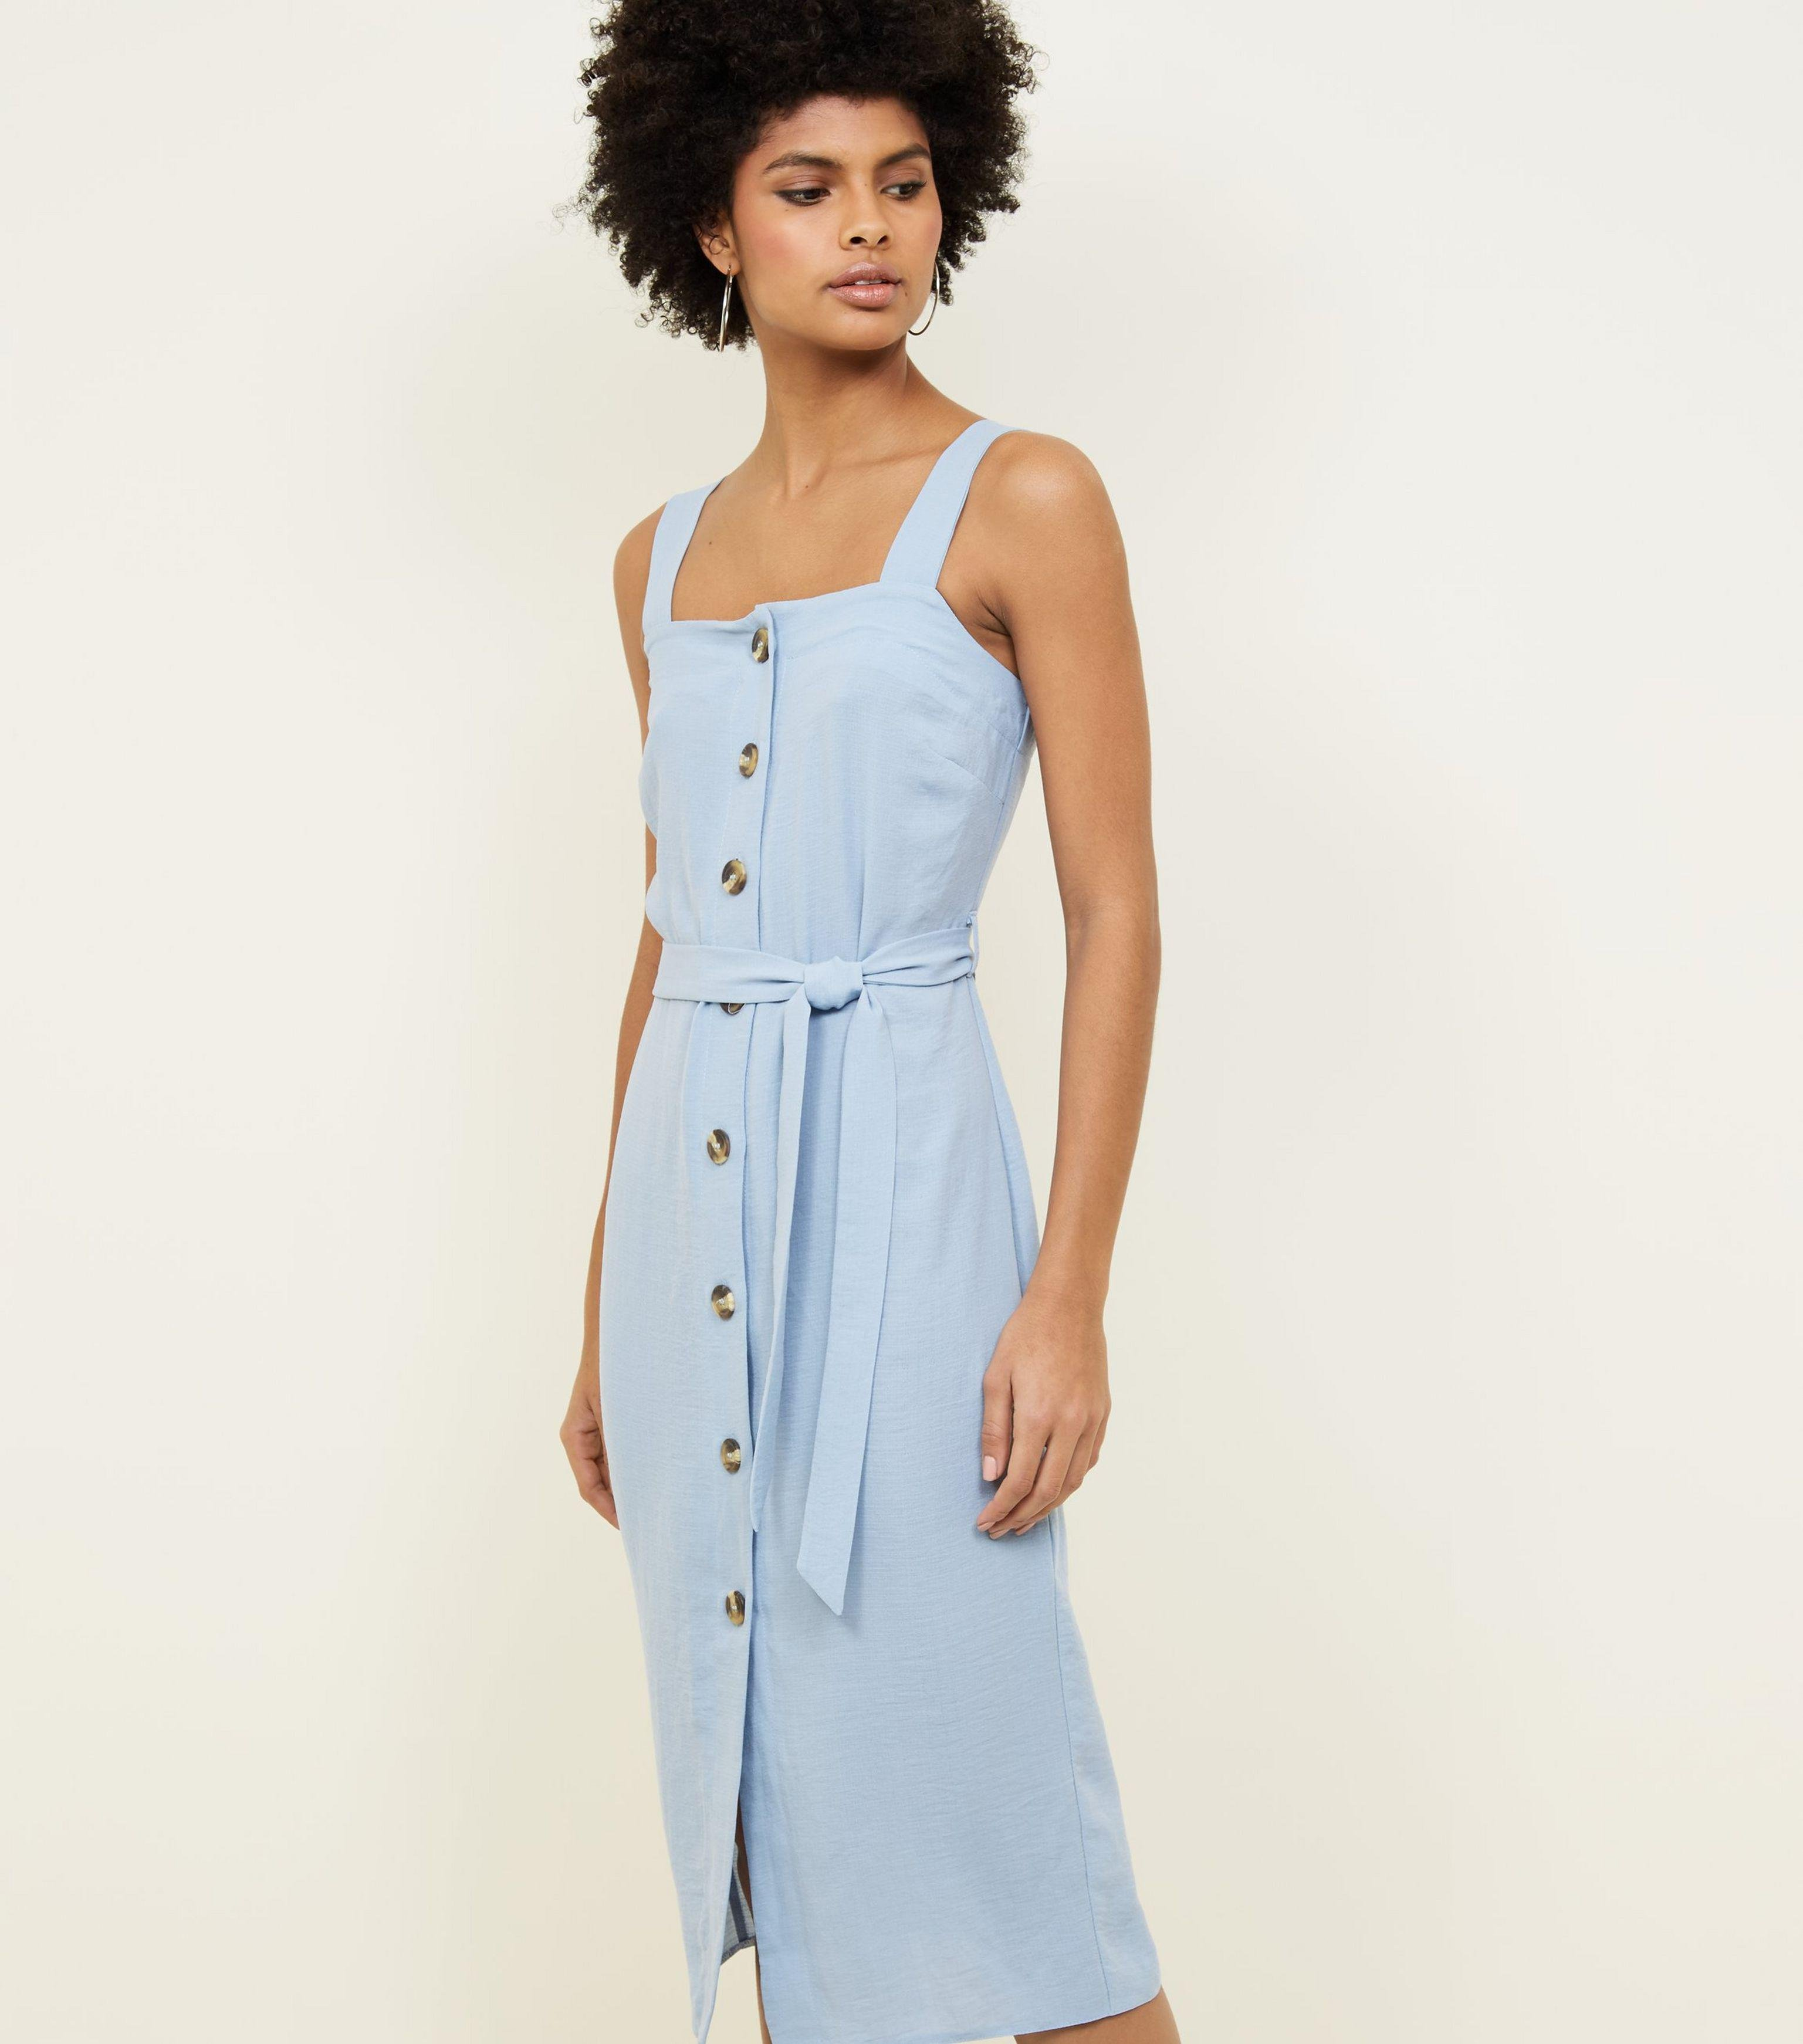 32c2f8582f New Look Pale Blue Button Up Belted Linen-look Midi Dress in Blue - Lyst